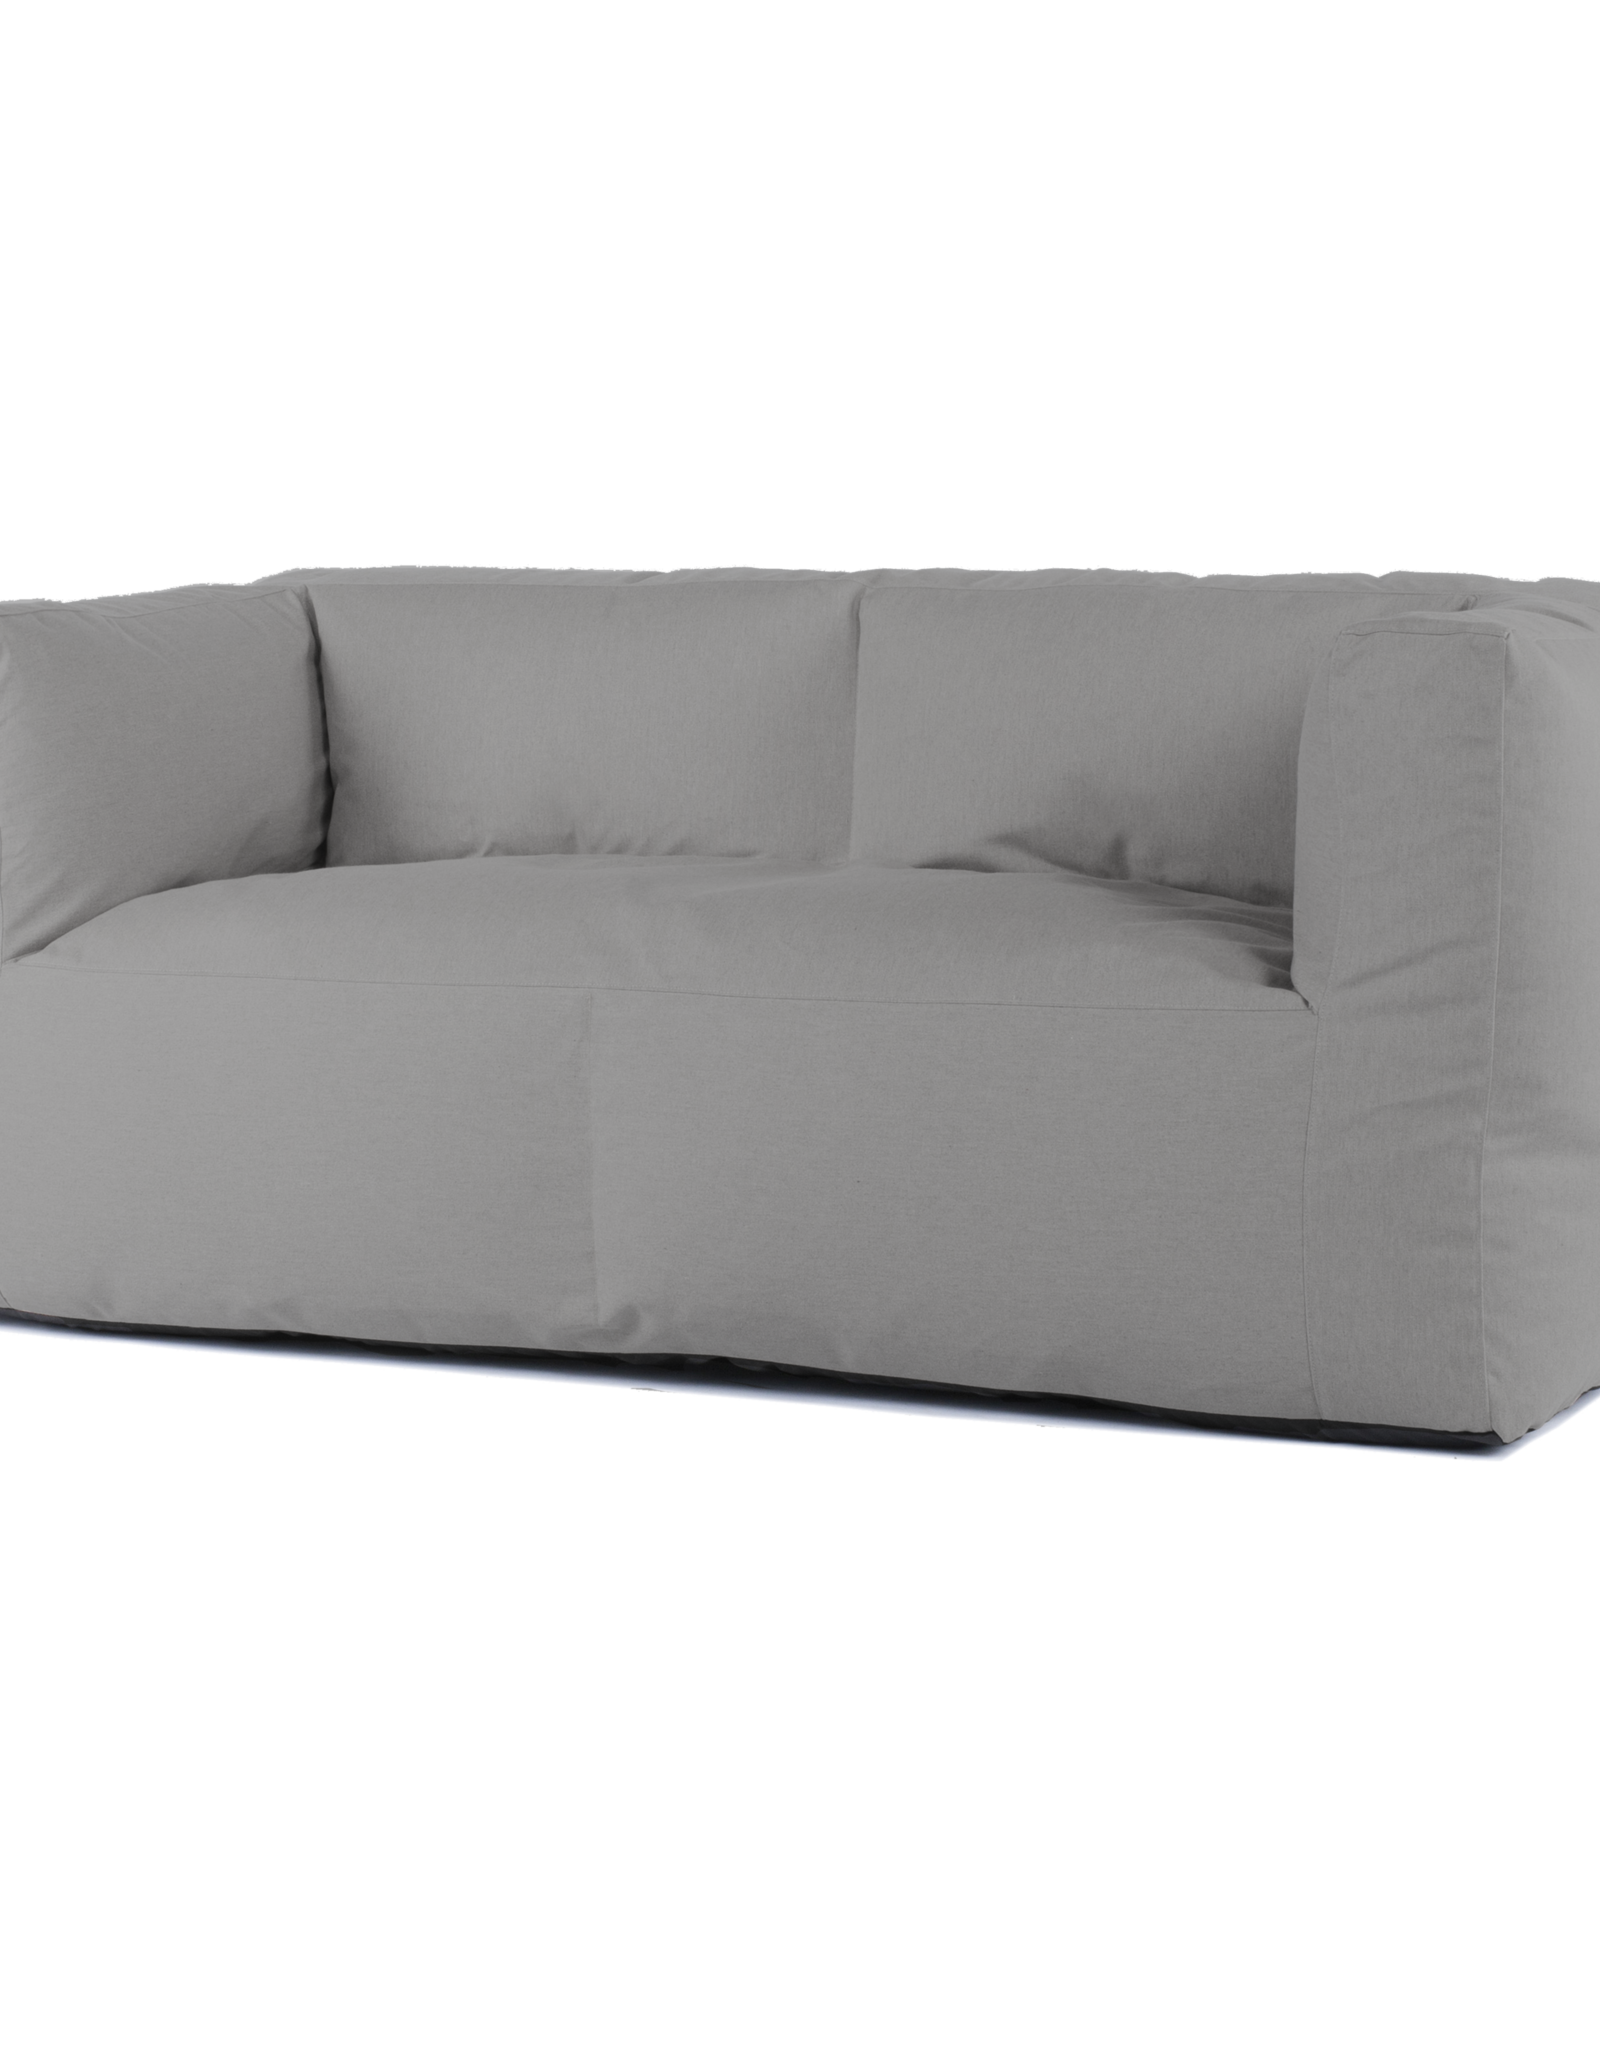 Bryck Bryck - couch 2 zit - Smooth collection - Medium grey